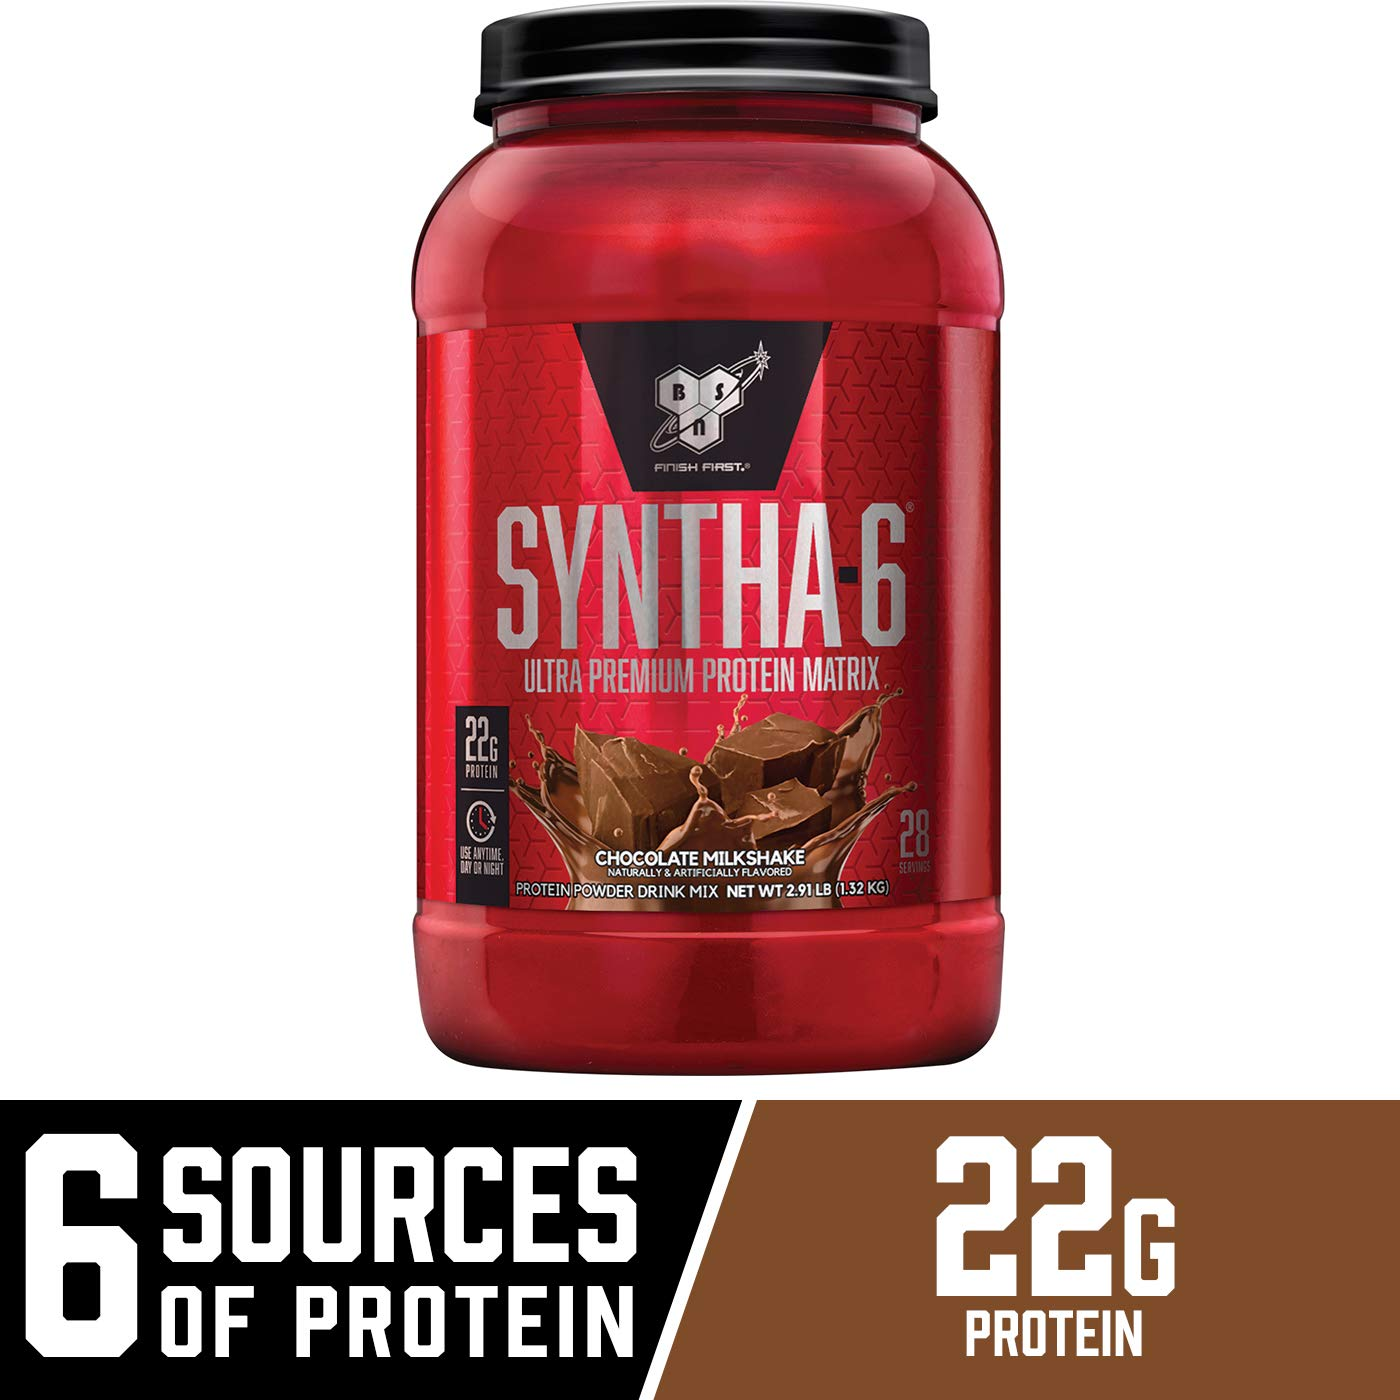 BSN SYNTHA-6 Whey Protein Powder, Micellar Casein, Milk Protein Isolate Powder, Chocolate Milkshake, 28 Servings (Package May Vary) by BSN